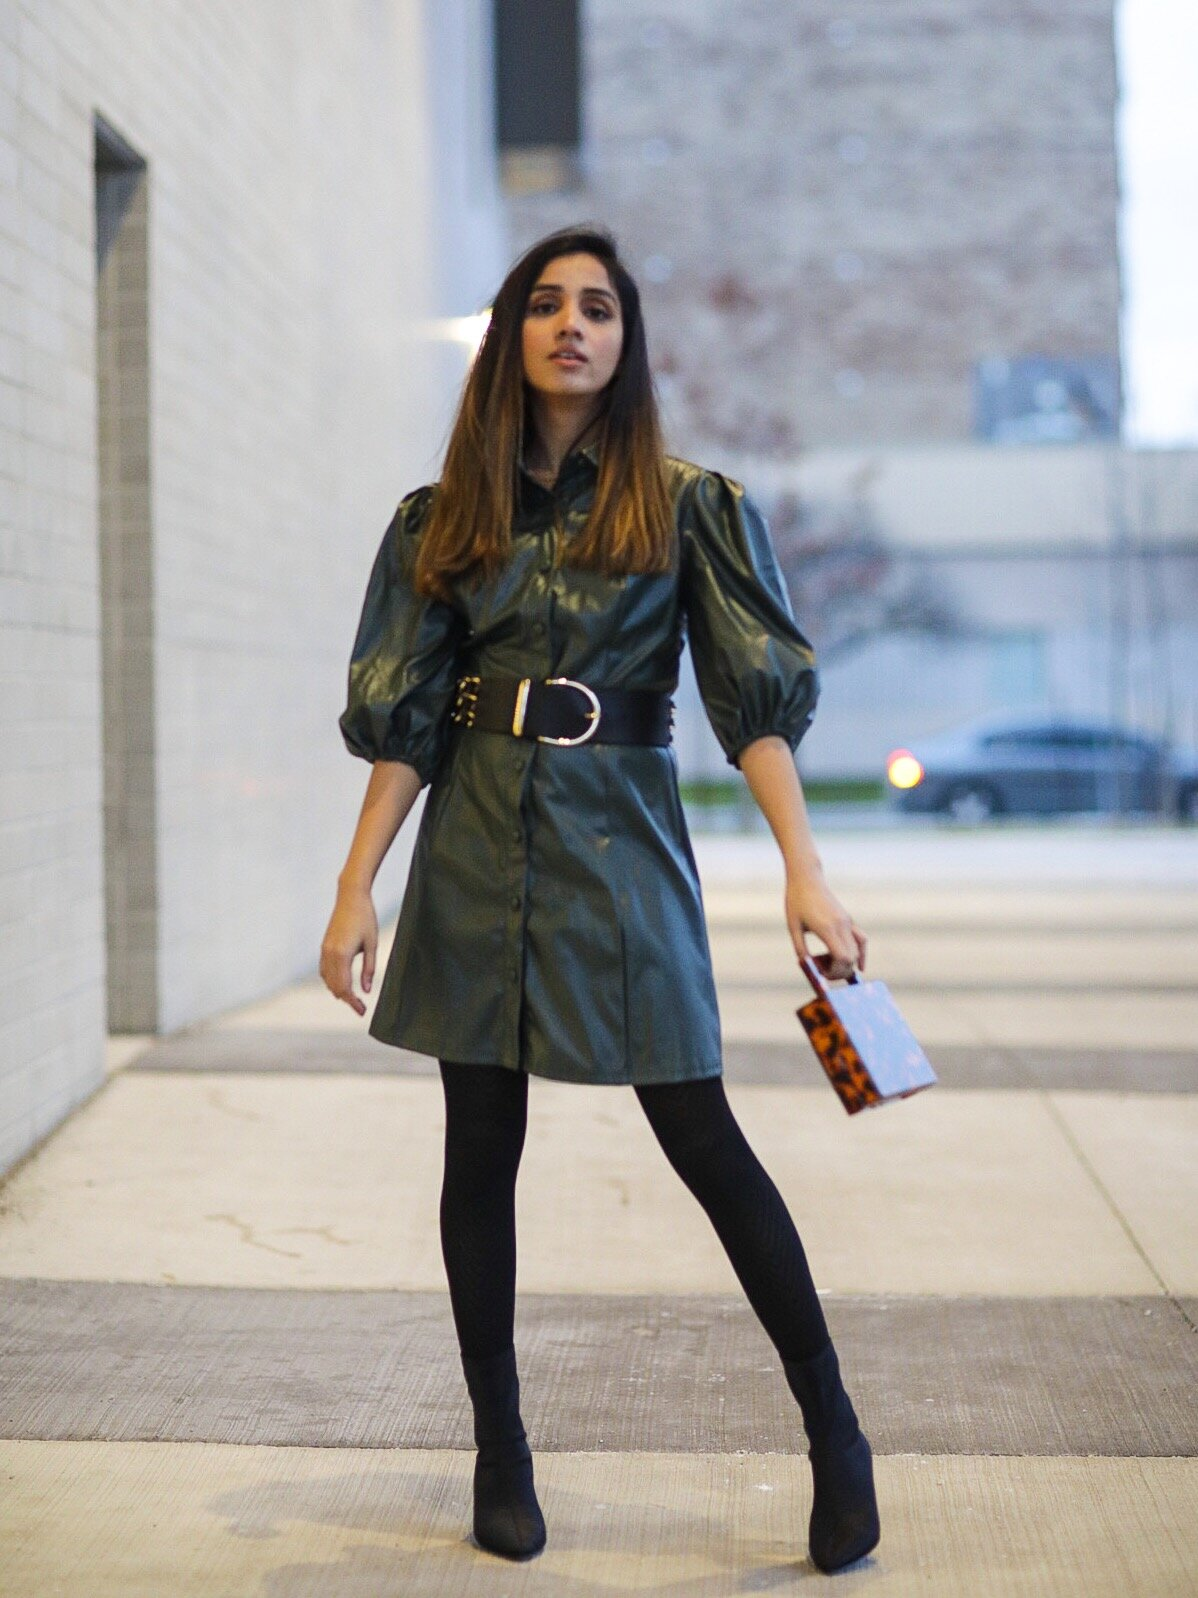 Leather Dress That I Have Been Eyeing On SHEIN X Madelaine Puff Sleeve Button Front PU Dress Faiza Inam Leather dress 2019 trend 44